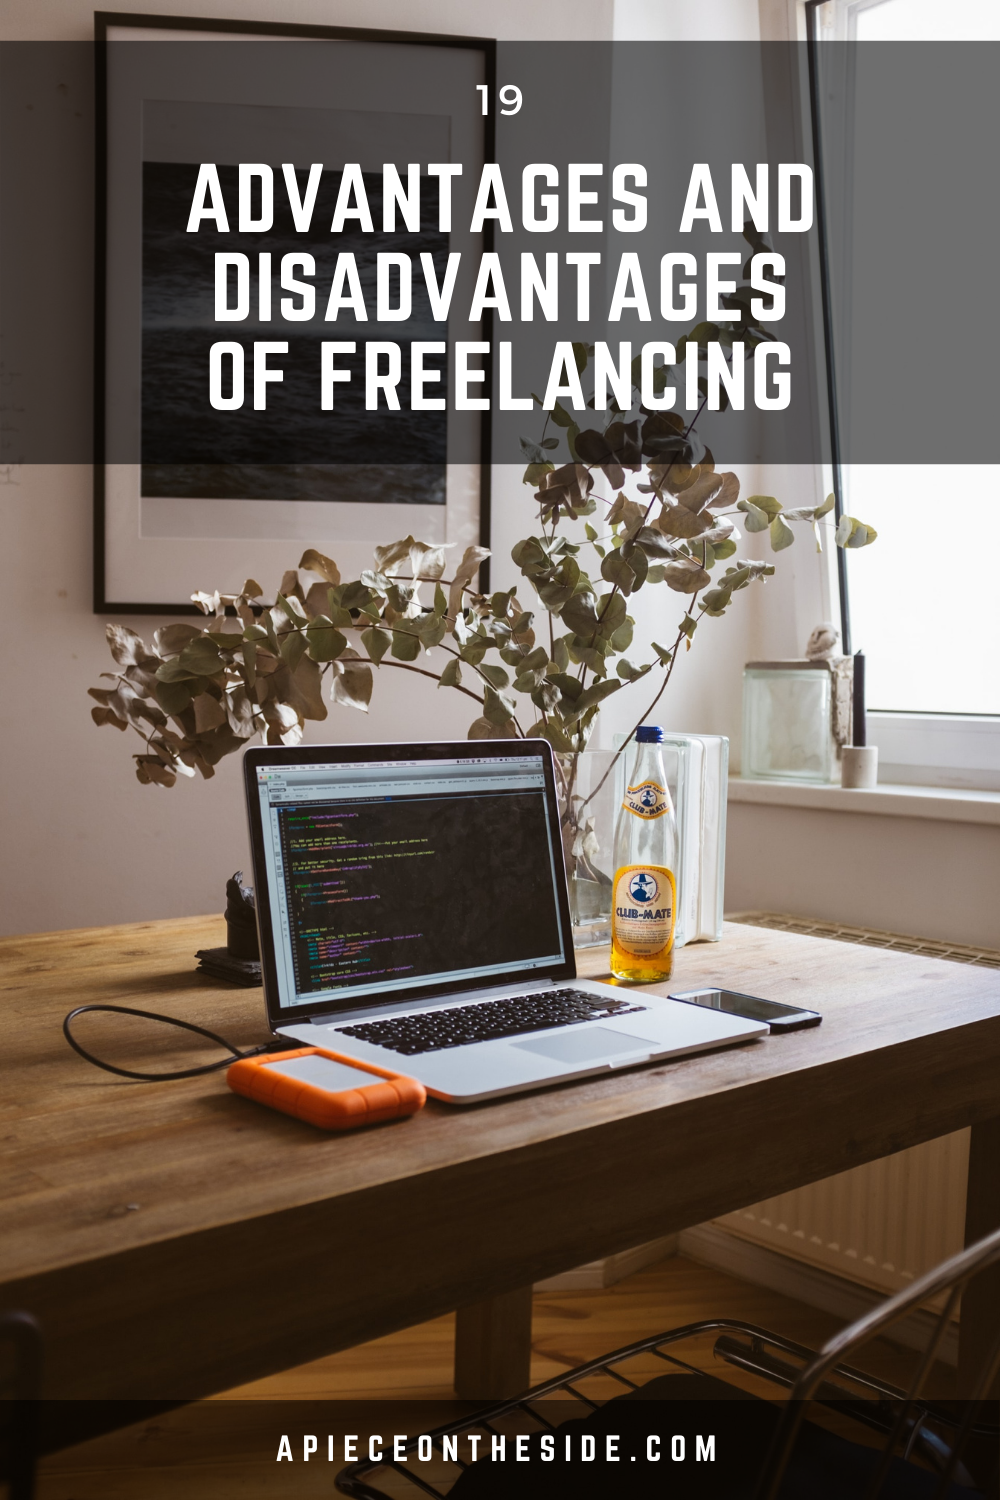 19 Advantages and Disadvantages of Freelancing